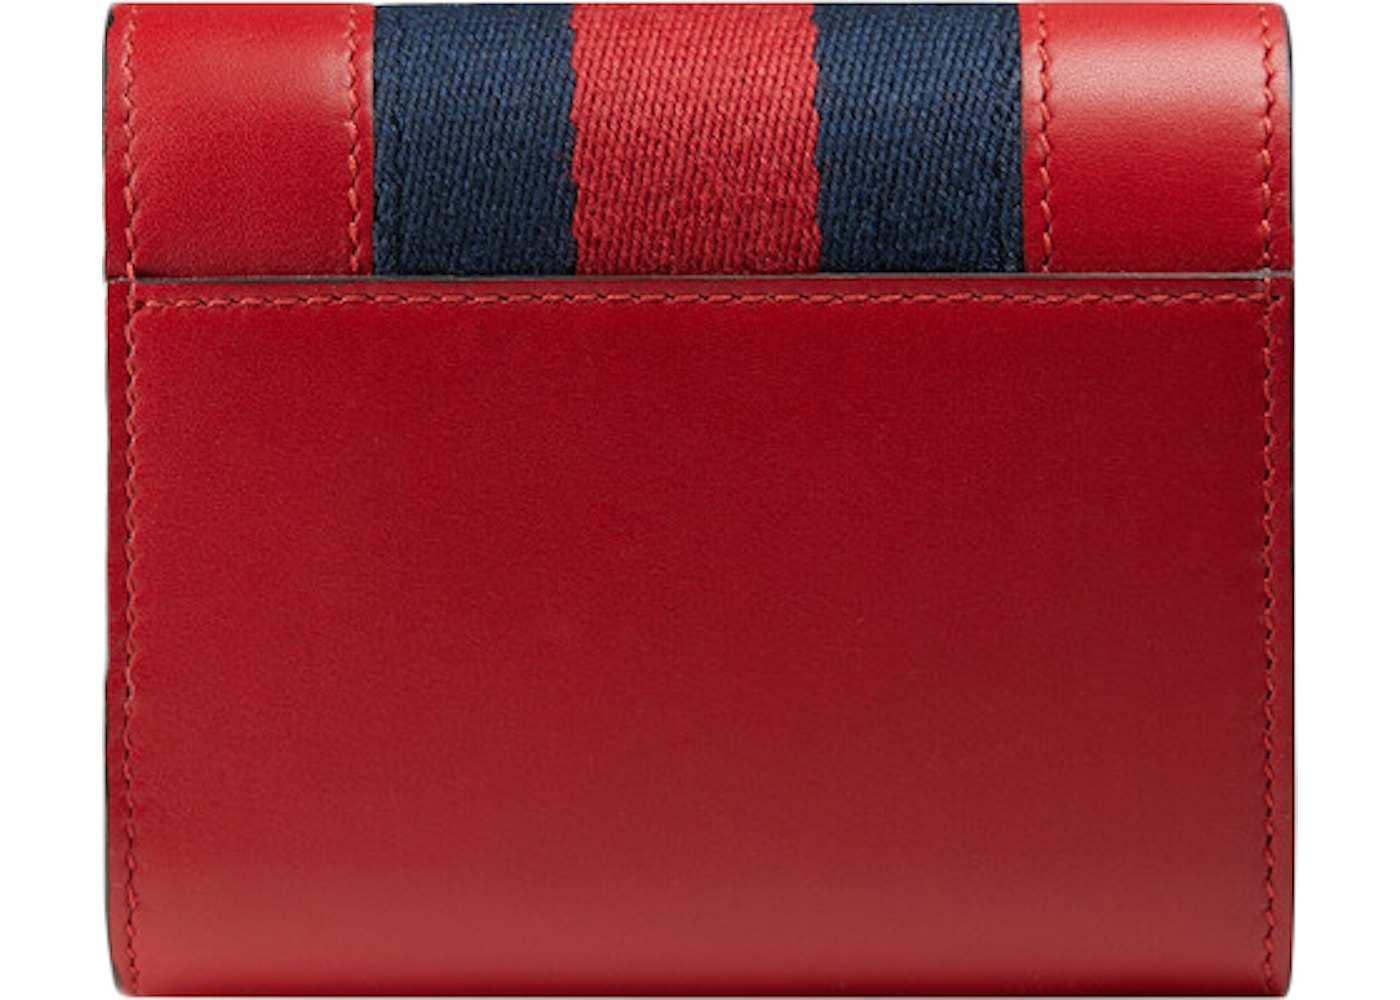 ae60080863bd Gucci Sylvie Wallet Hibiscus Red